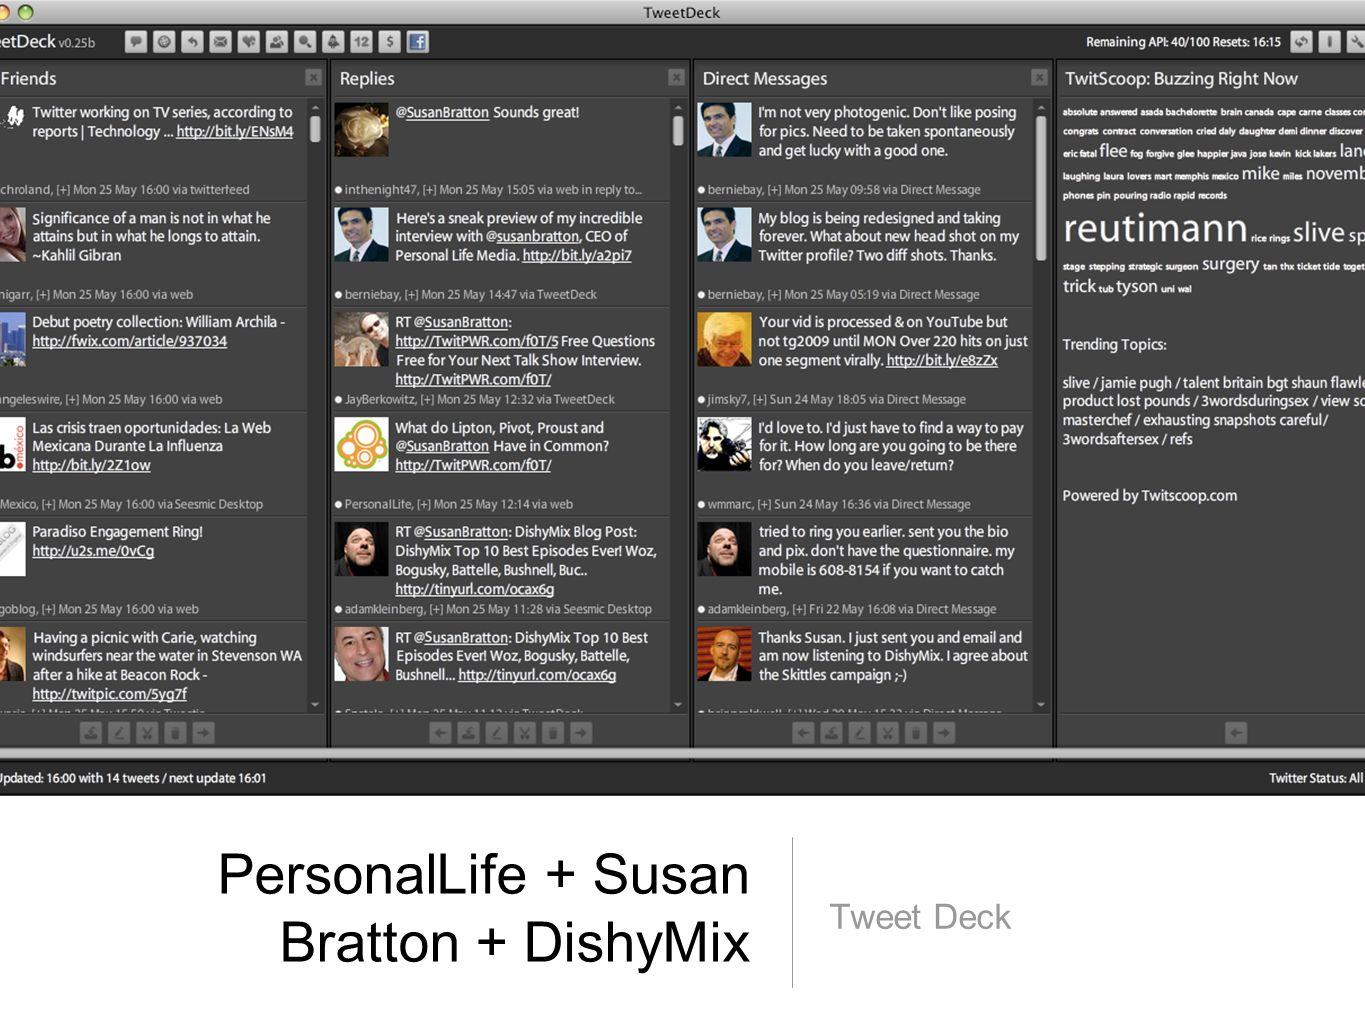 PersonalLife + Susan Bratton + DishyMix Tweet Deck